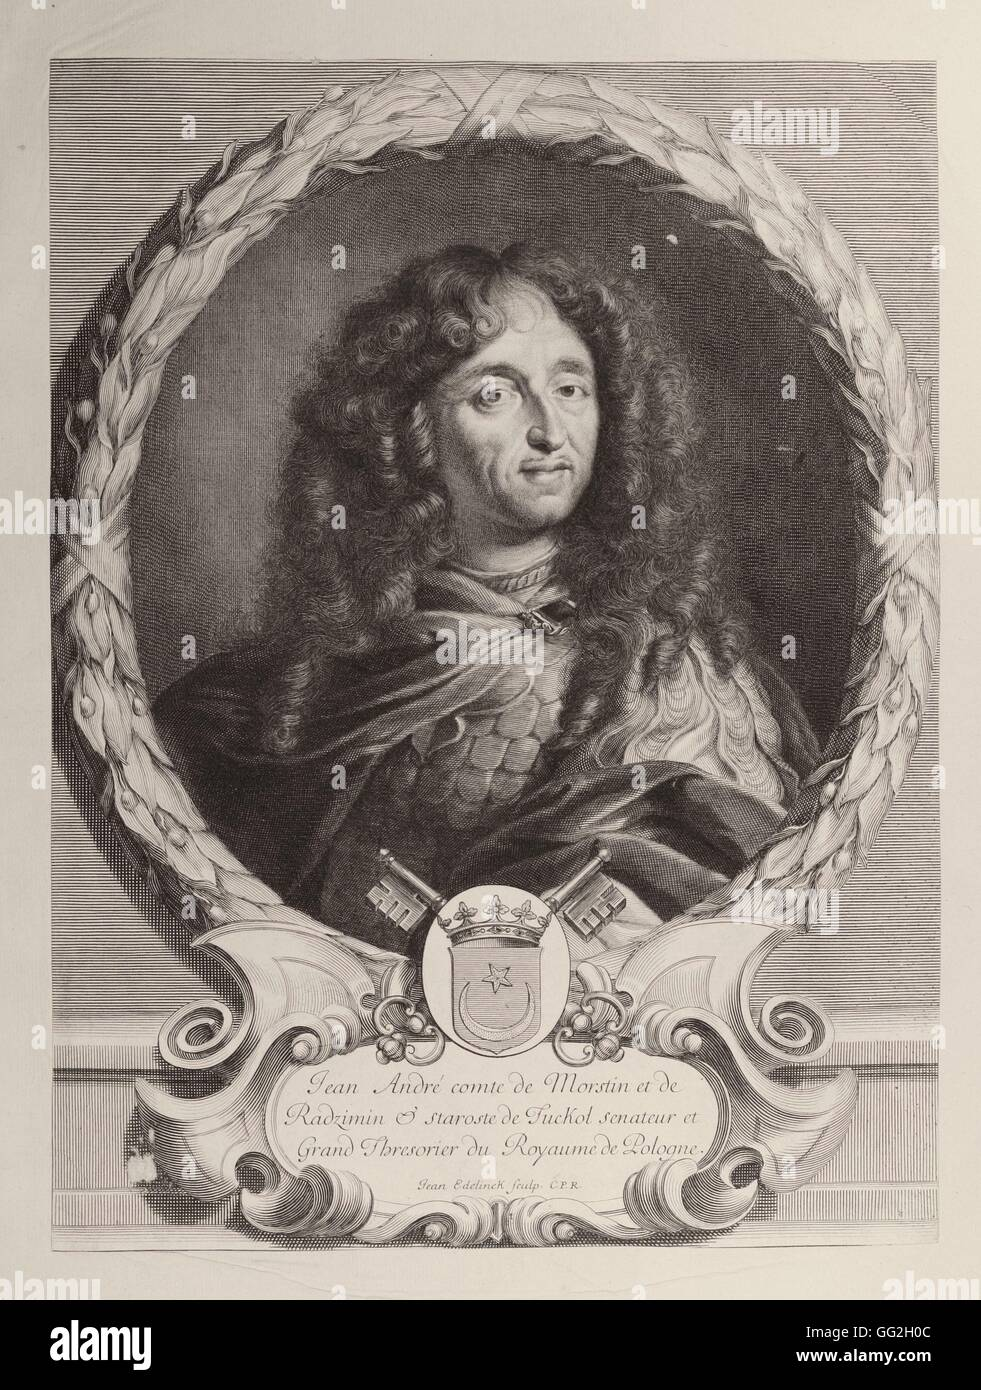 Jean André, Count of Morstin and Radzimin. Senator and Master Treasurer of the Kingdom of Poland - Stock Image